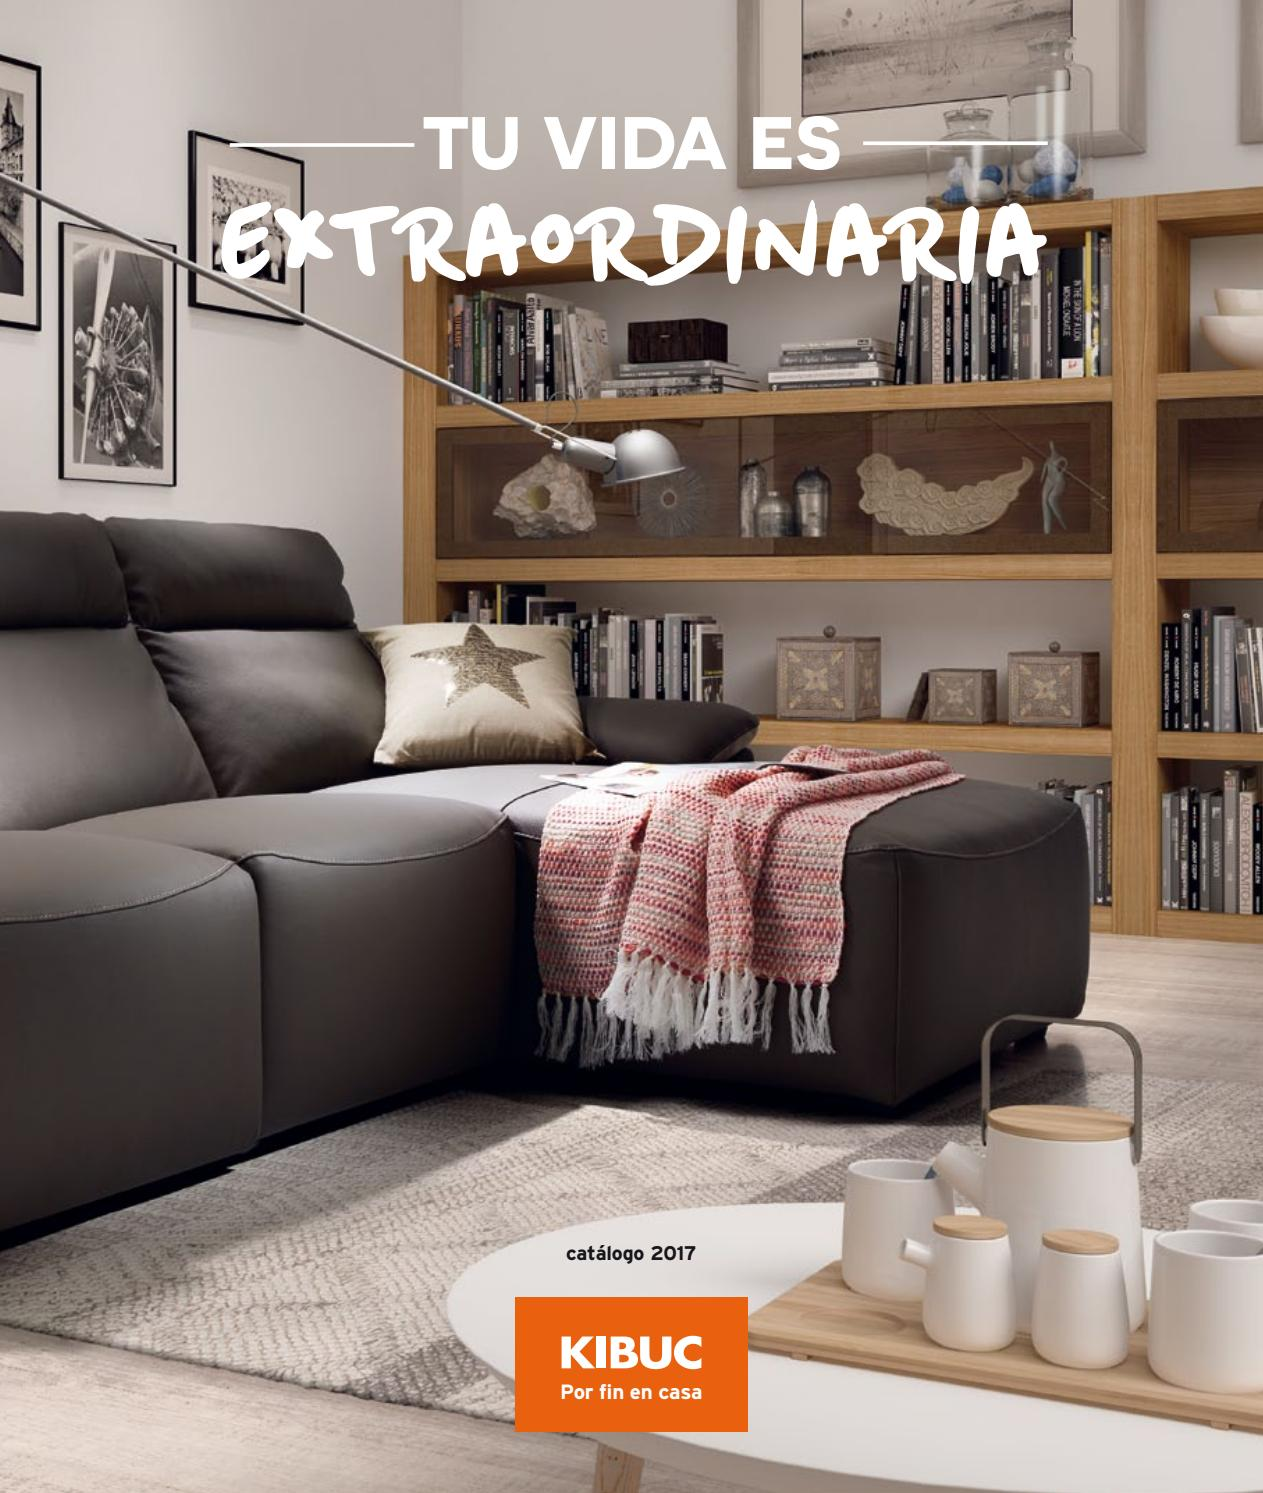 Muebles Rey Santander Kibuc Catalogo General 2016 17 By Kibuc Issuu